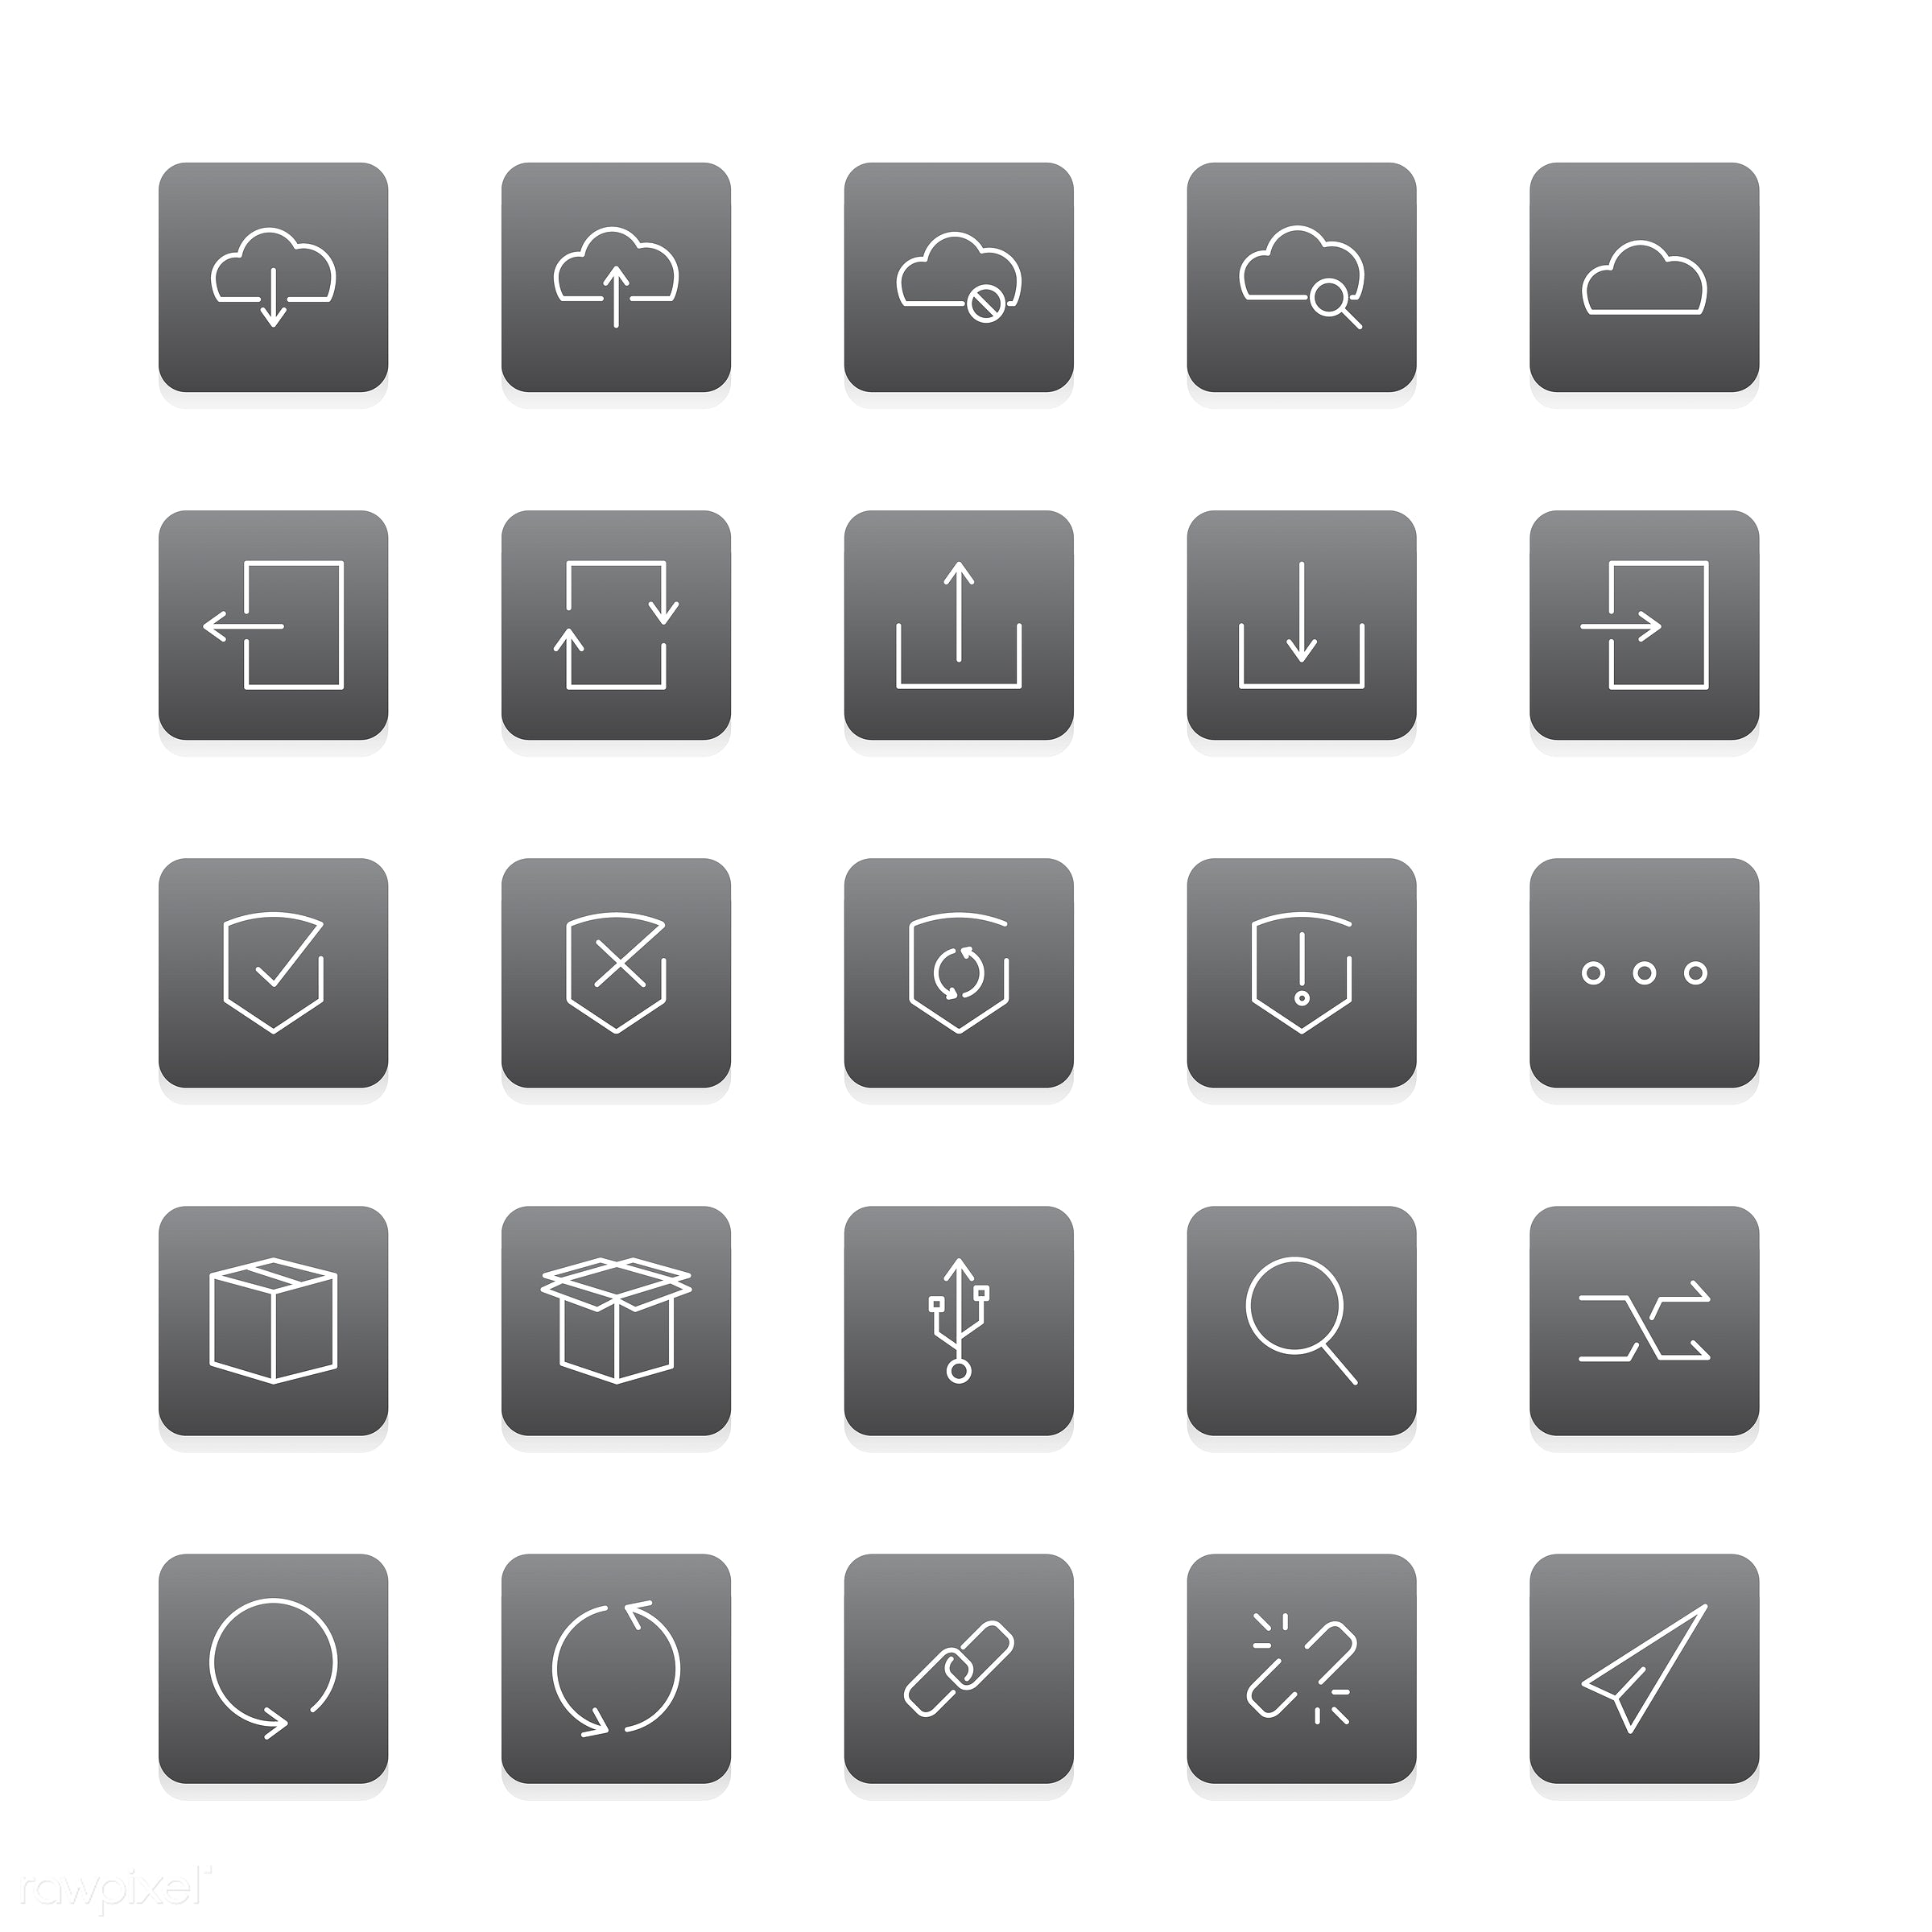 Vector of website data storage icons - collection, design, flat, graphic, icon, illustration, isolated, layout, platform,...